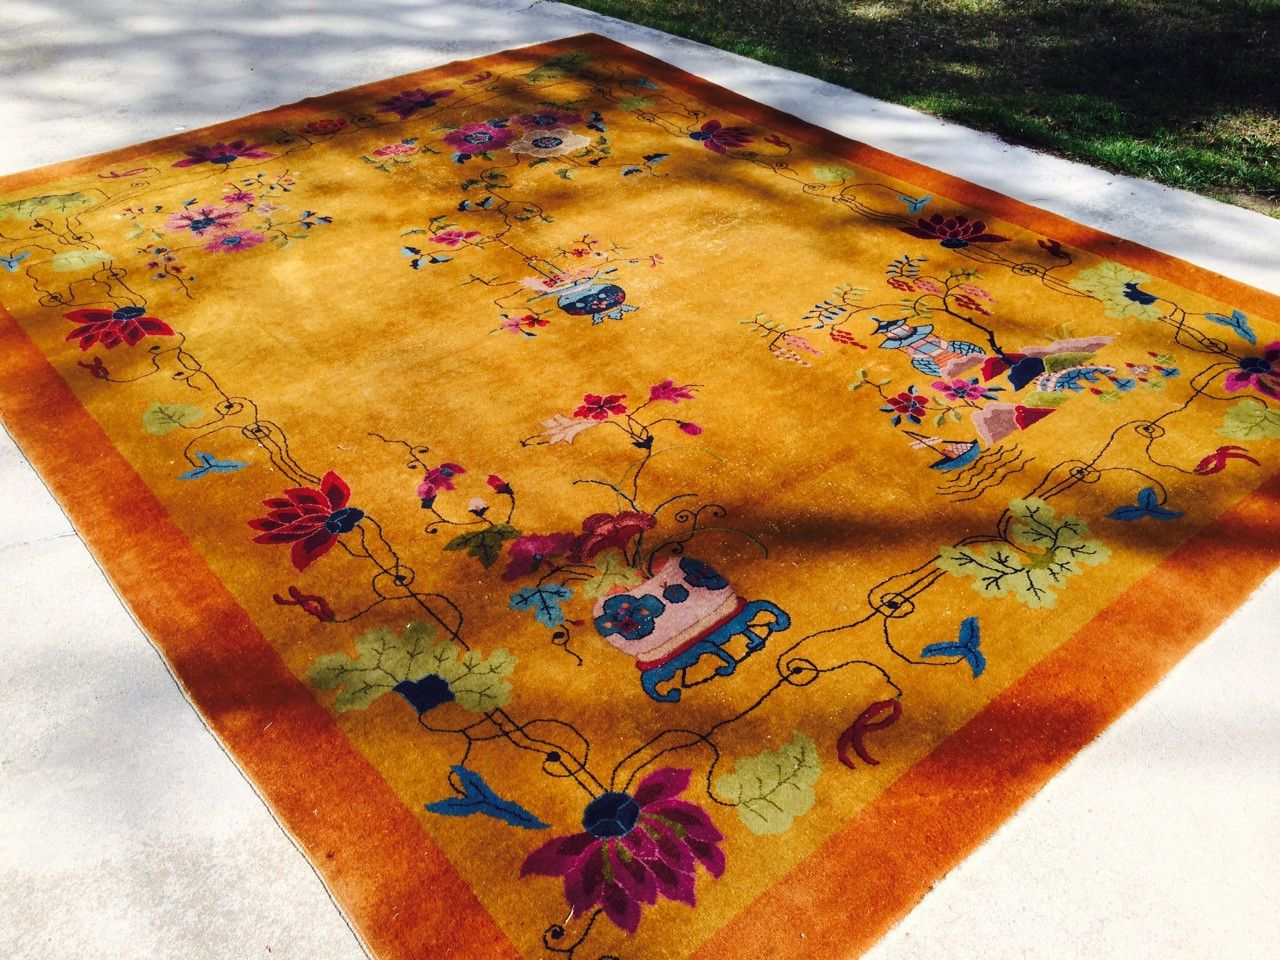 Here is a beautiful 1920's-30's art deco Chinese carpet in the 9'x 12' size range. It has scattered wear down to the foundation in three area's, but other than that, this carpet is as tough as it is b